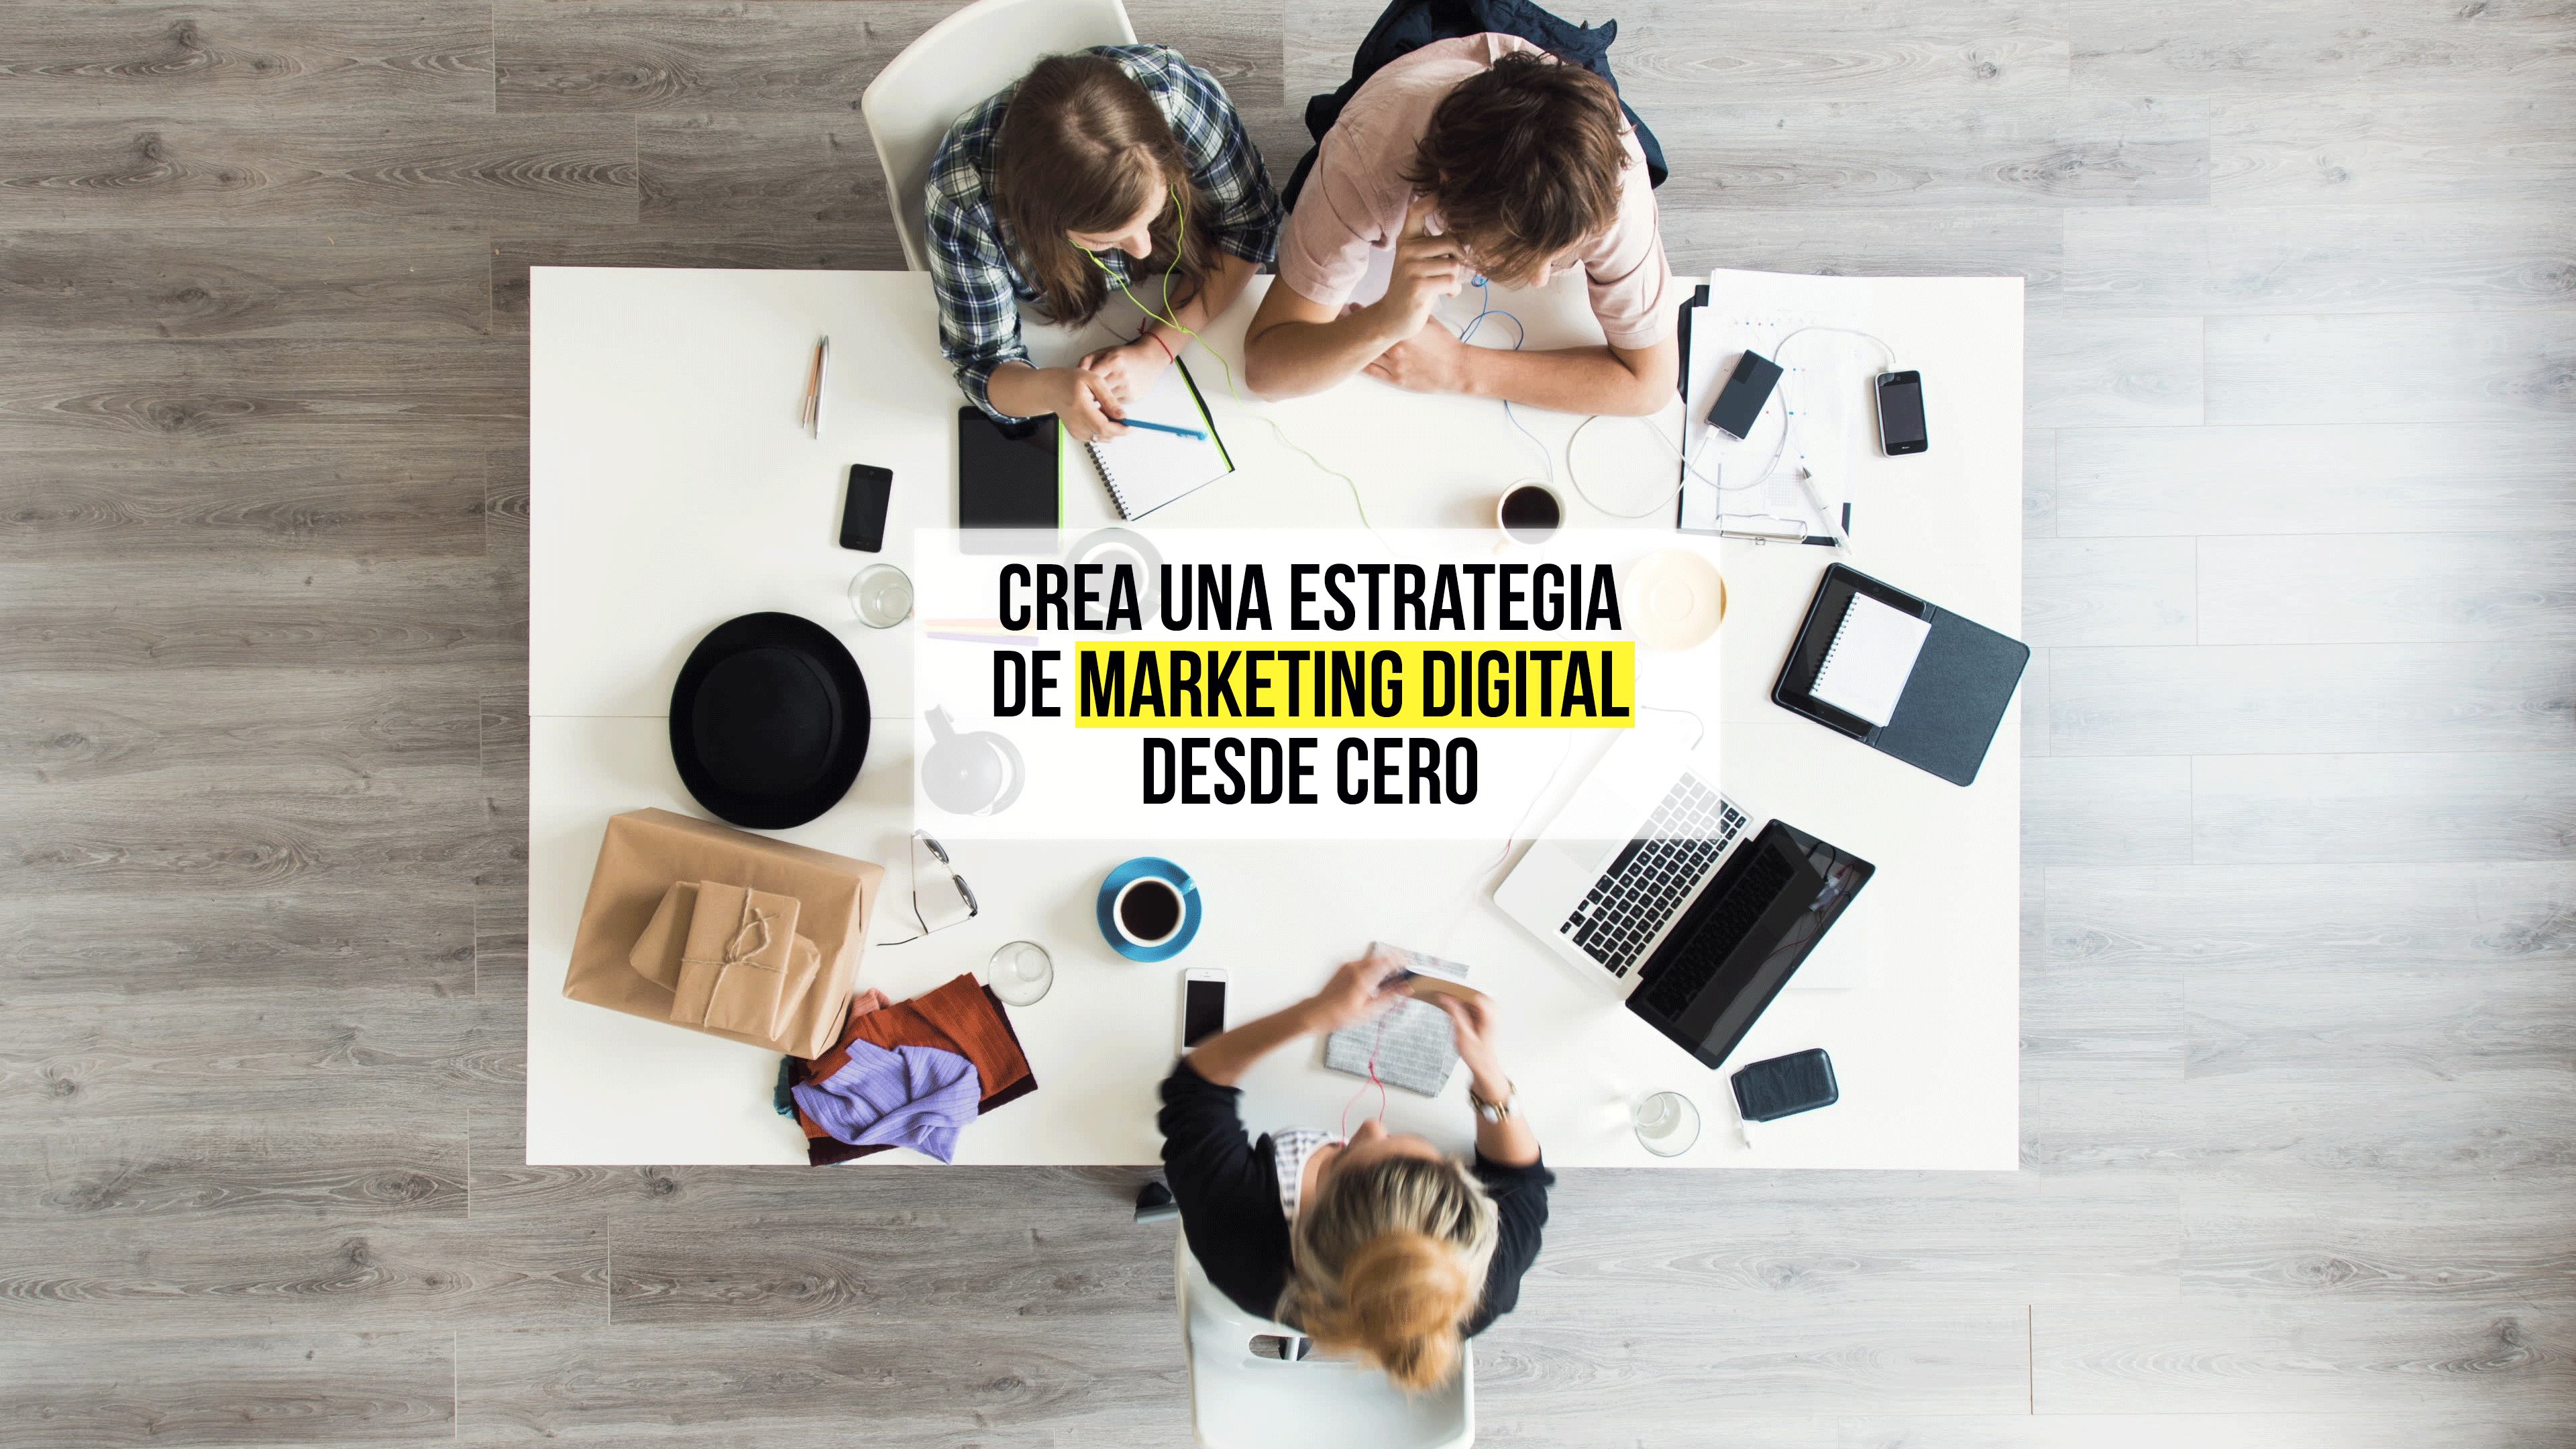 Crea una estrategia de Marketing Digital desde cero